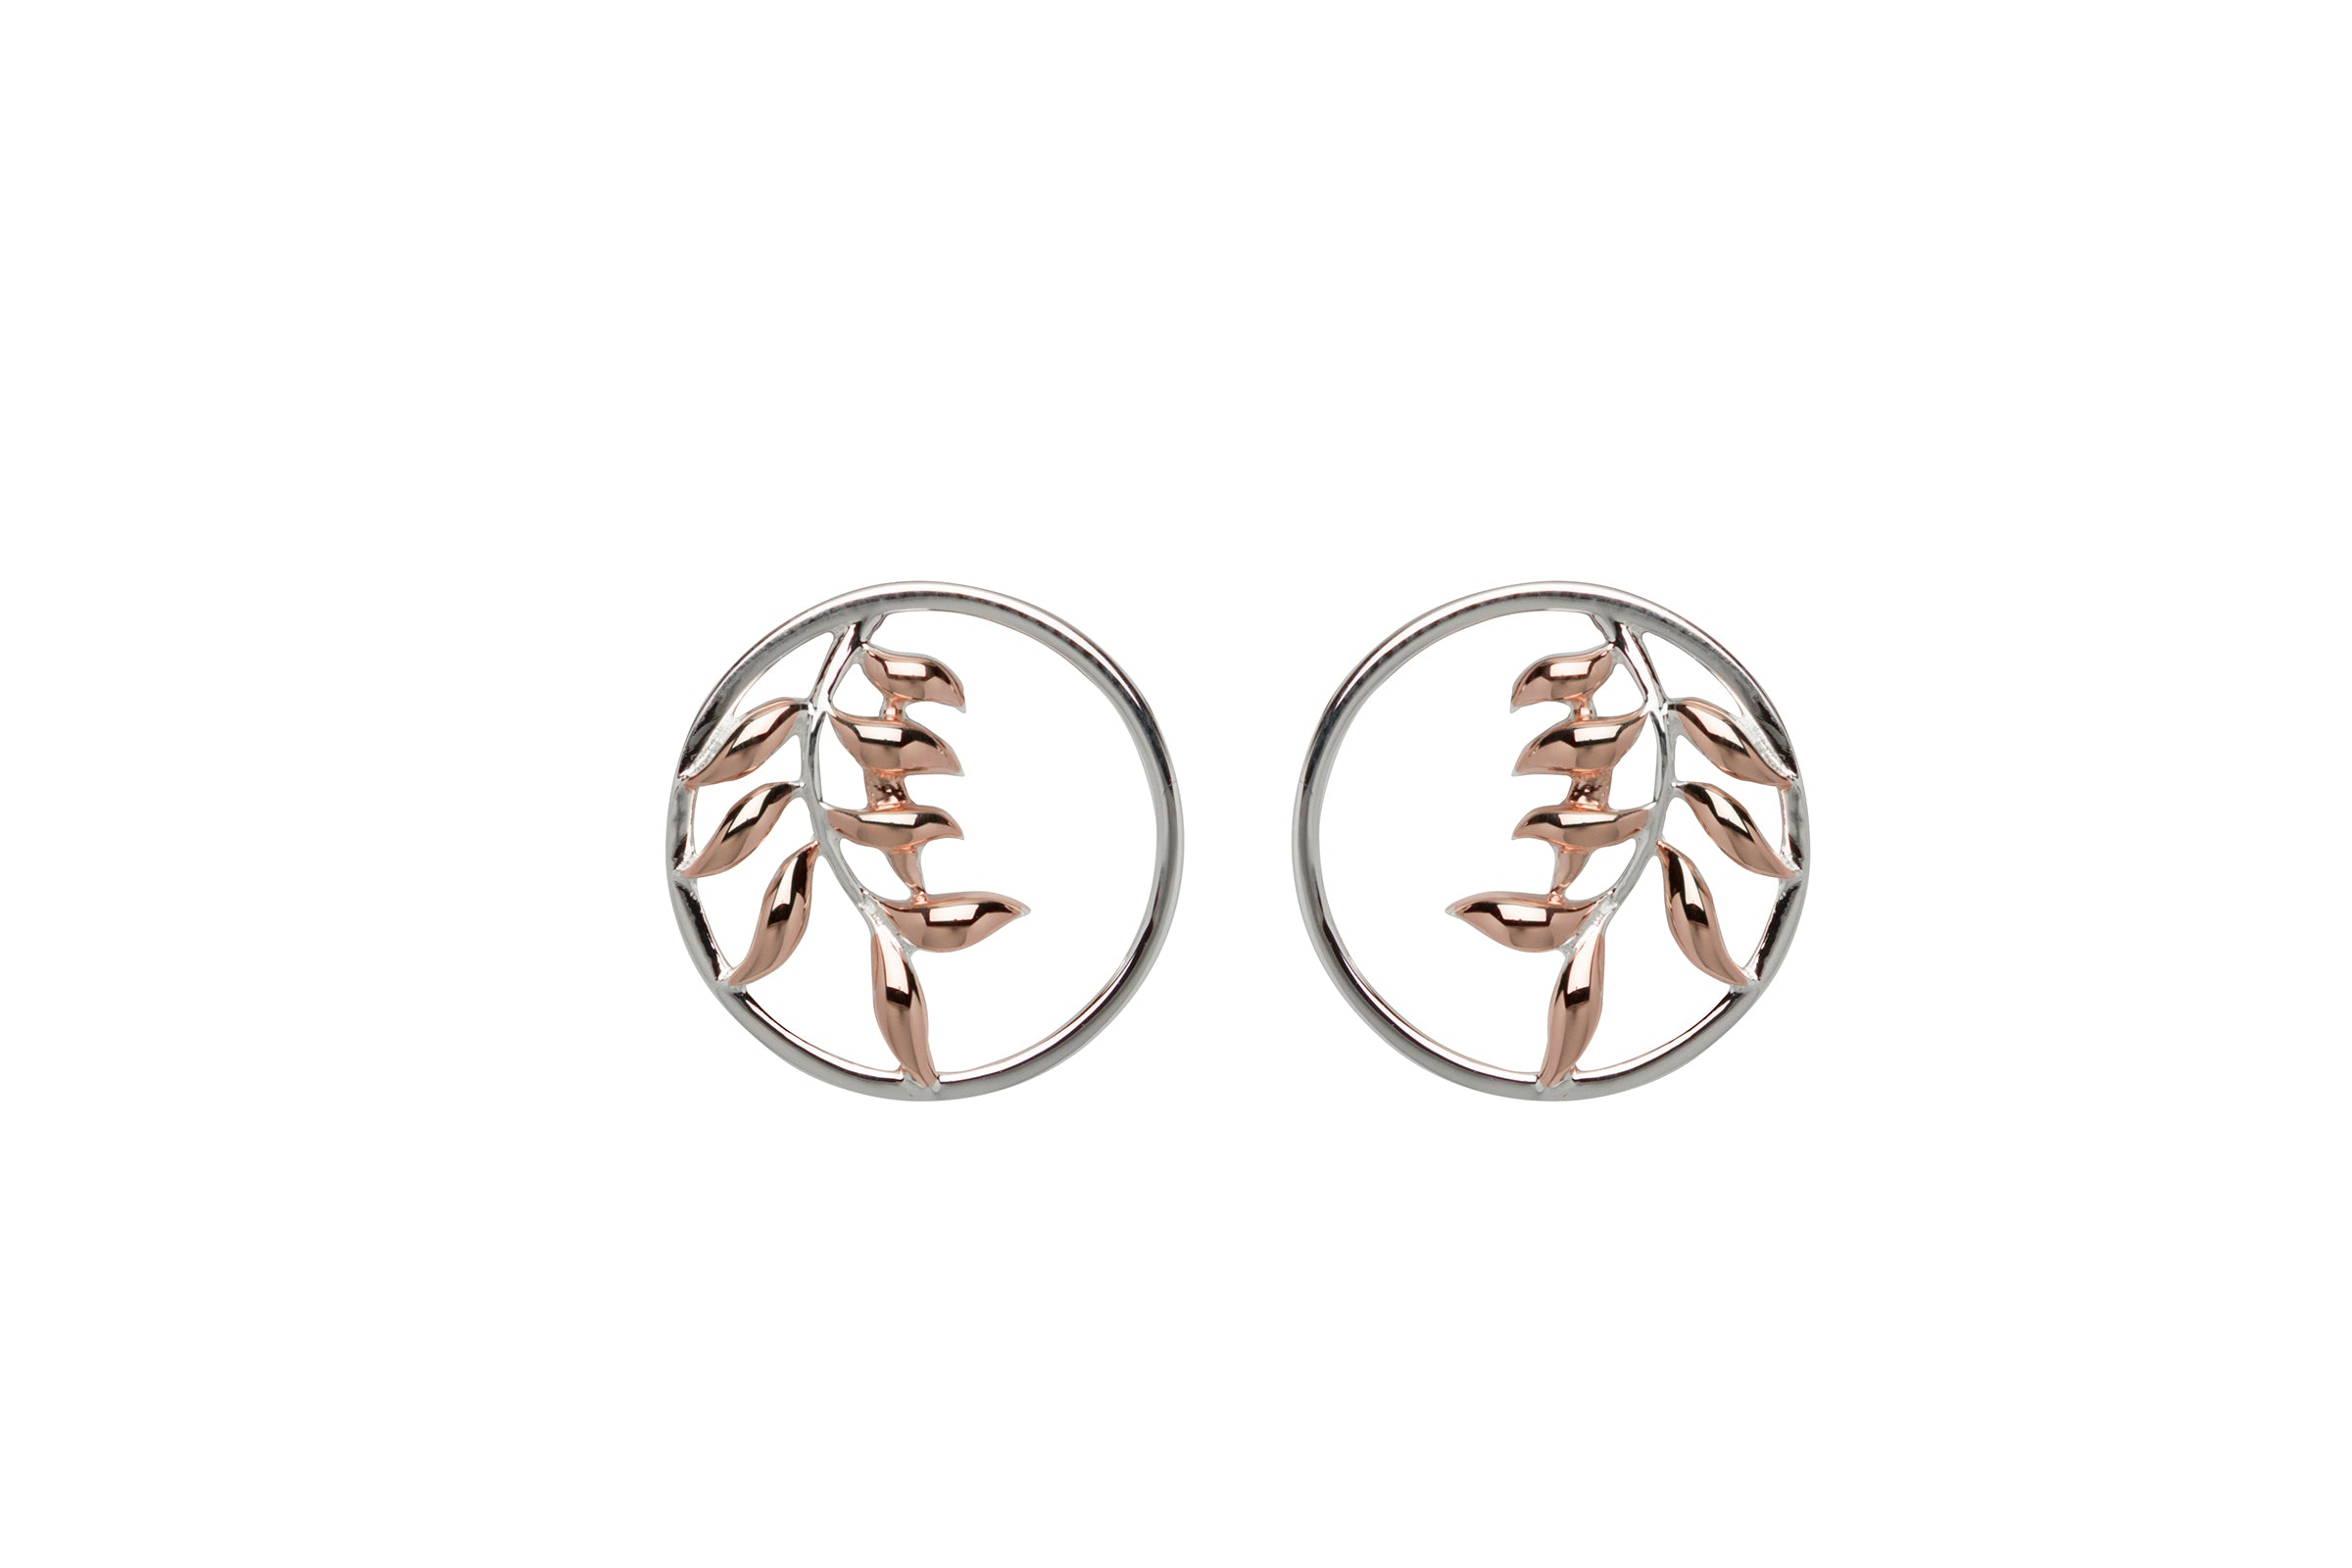 Sterling silver and Rose Gold Plate Stud Earrings